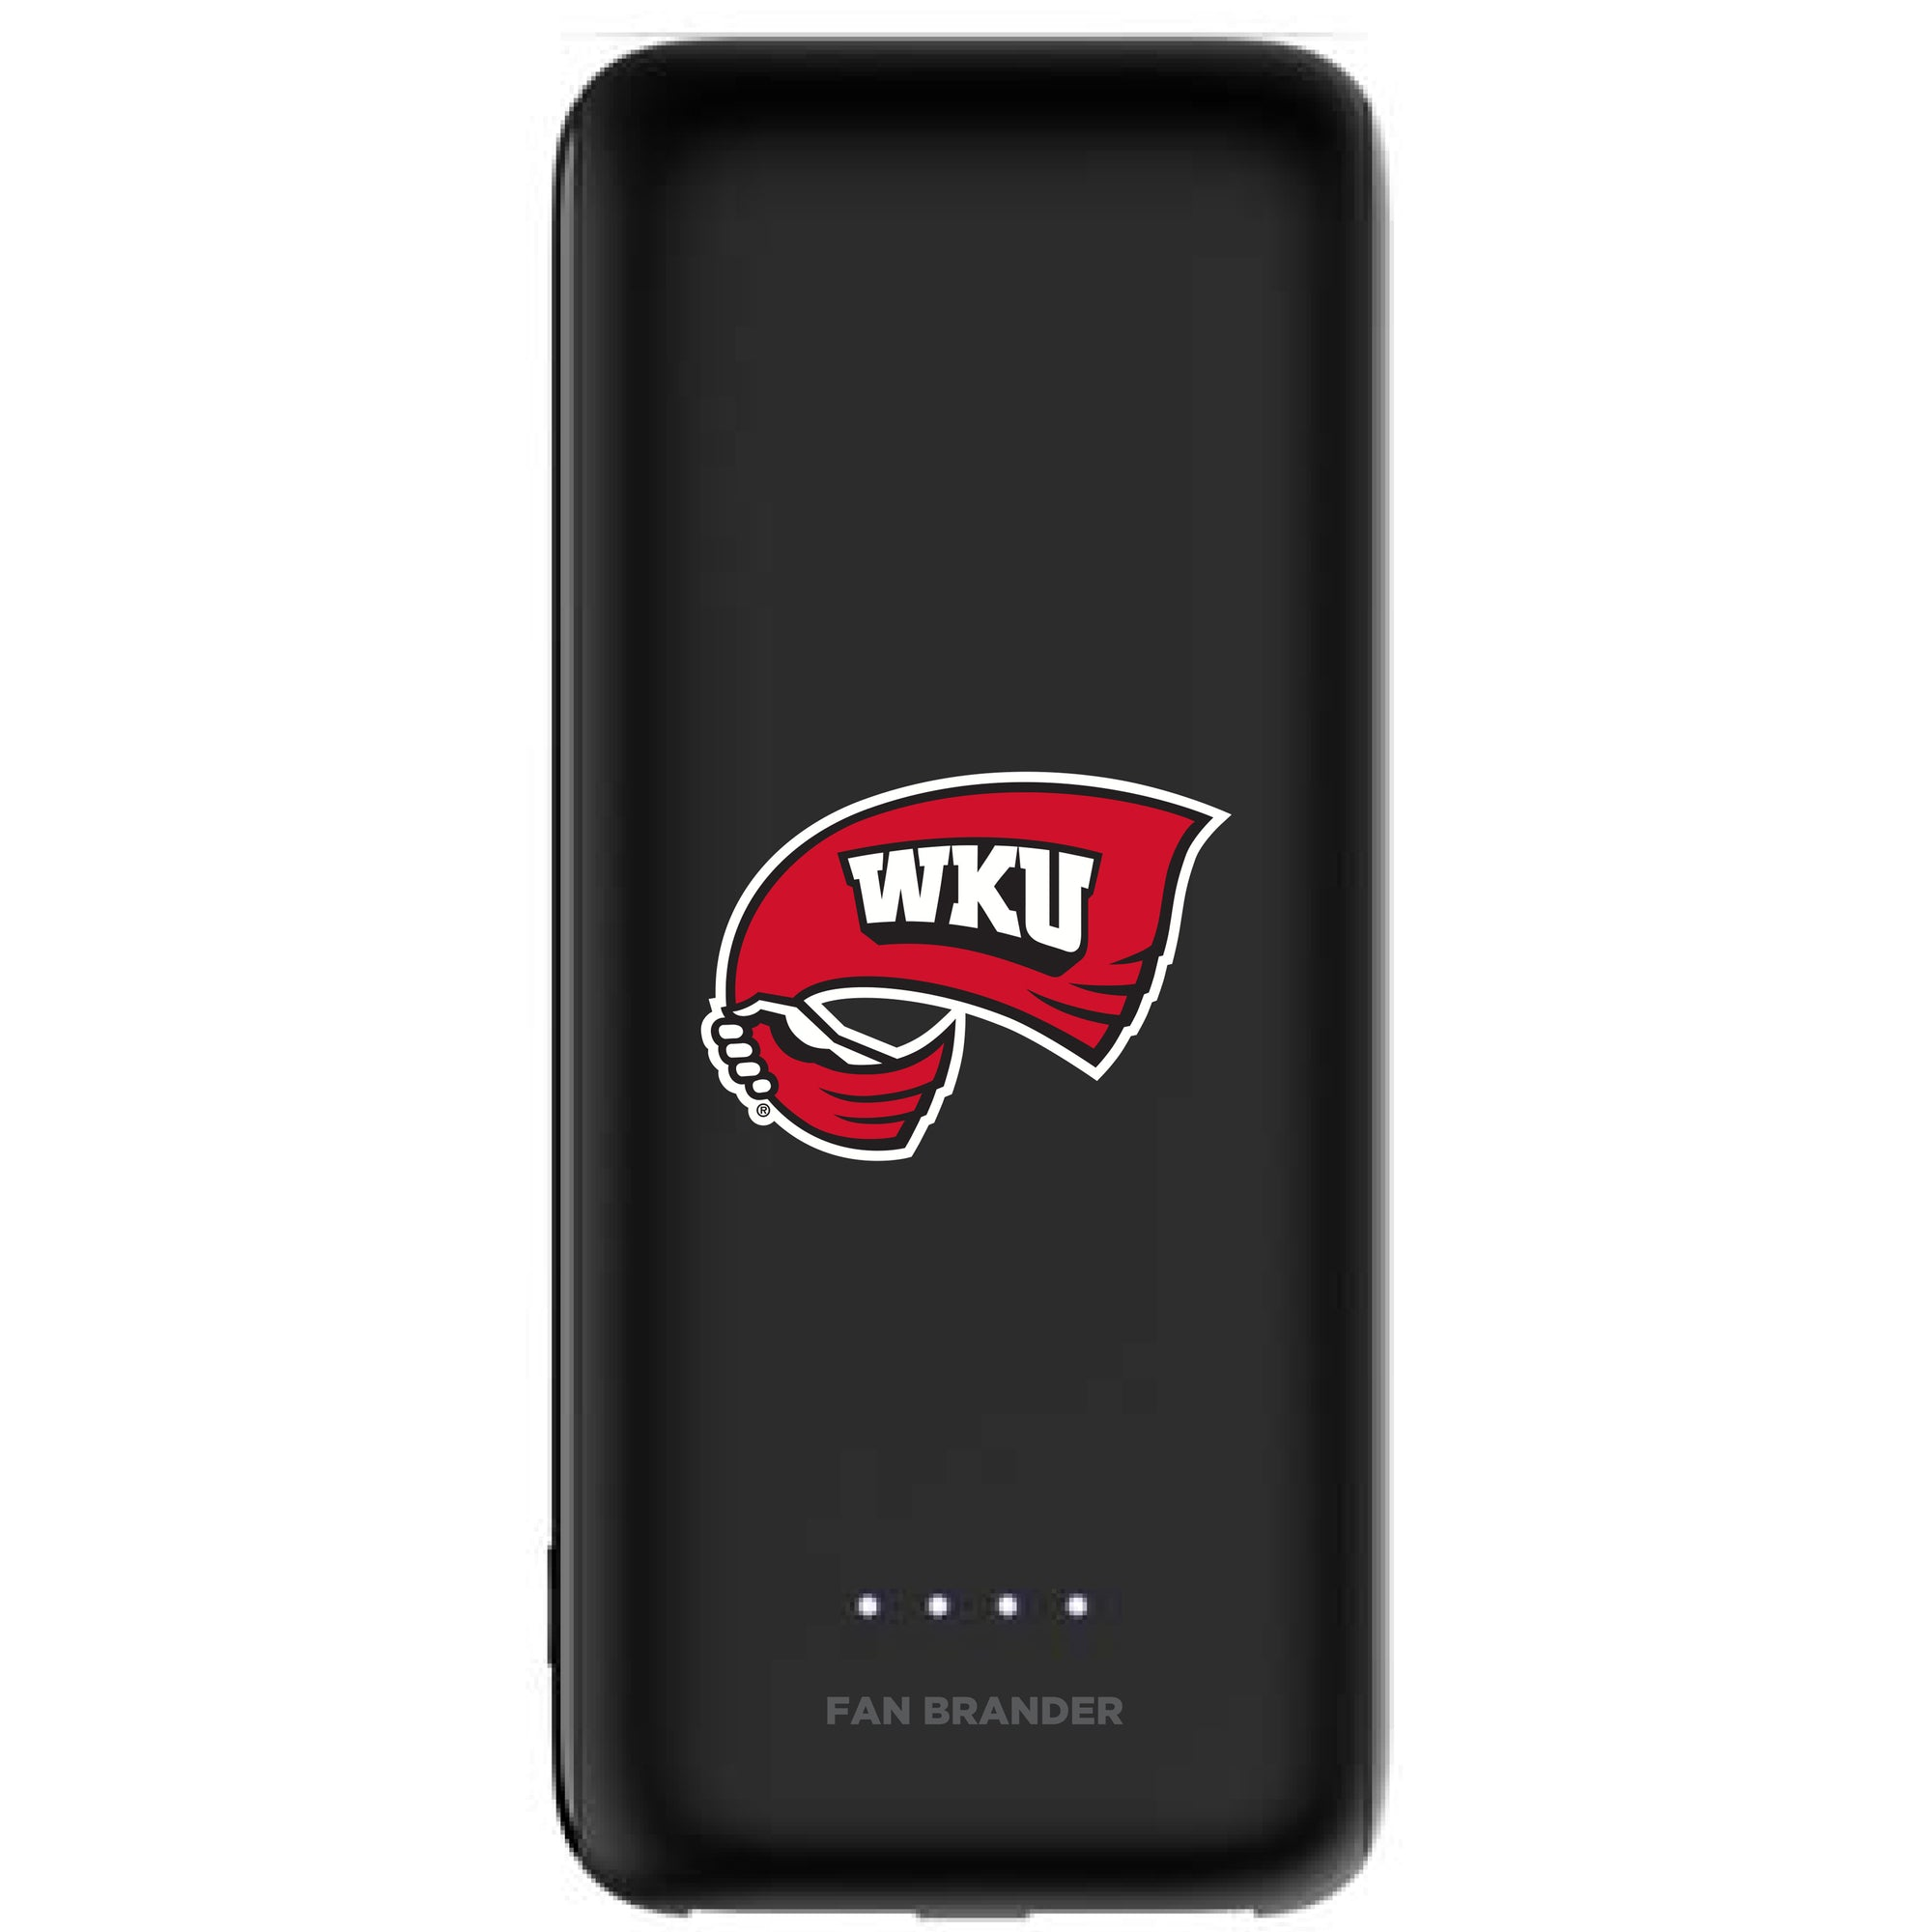 Western Kentucky Hilltoppers Power Boost Mini 5,200 mAH